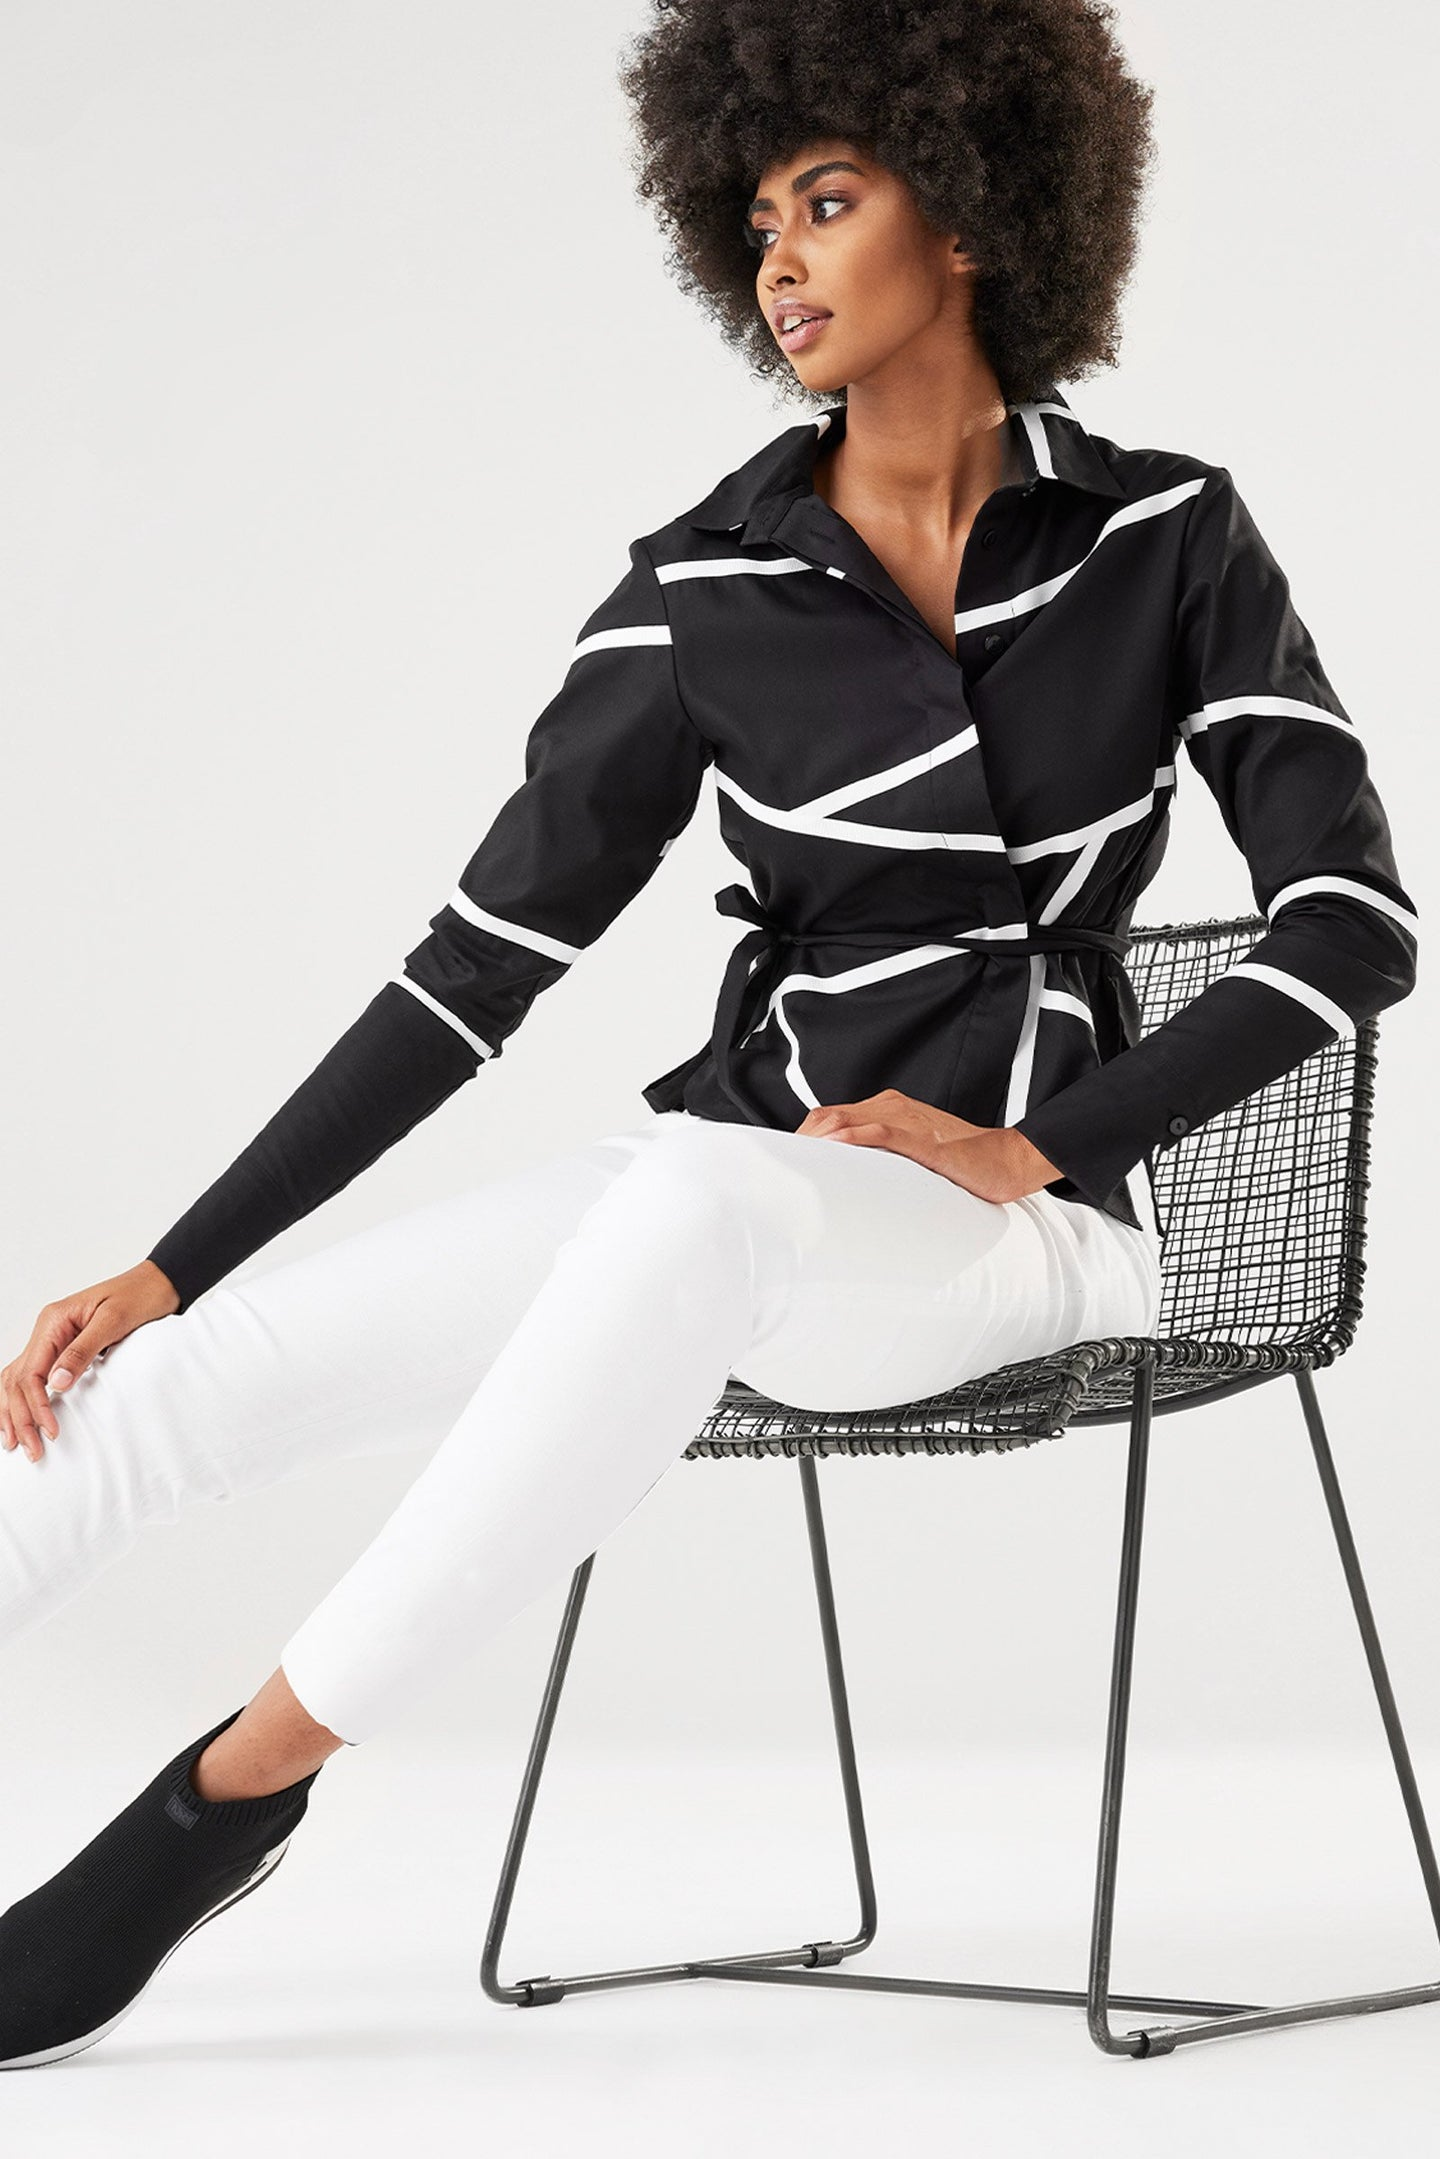 Modern, dynamic and versatile. Meet this season's take on the classic shirt jacket – the Vice Versa Poplin Button Down Top with Contrast Tape Strokes. This elevated everyday essential is designed with a modern relaxed fit and an edgy high-low rounded hemline for a flattering appearance. A cool menswear-inspired collared neckline adds a structured feel while contrasting tape throughout adds a dynamic avant-garde edge to this classic jacket. Crafted using Anatomie's signature wrinkle-free fabrics, this statem